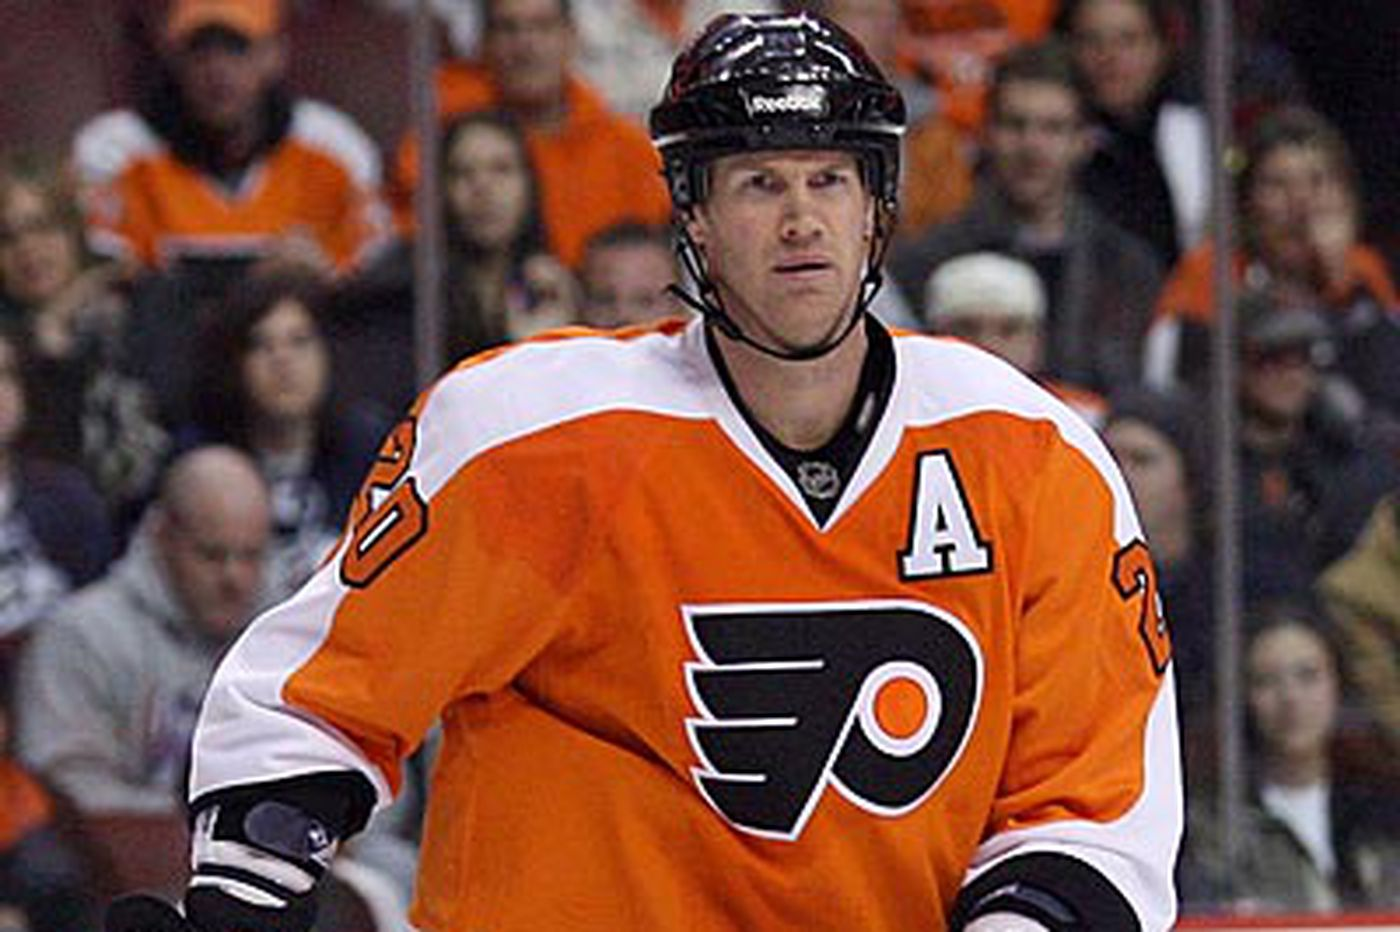 Flyers Notes: Flyers' Pronger won't say whether he'll play in opener